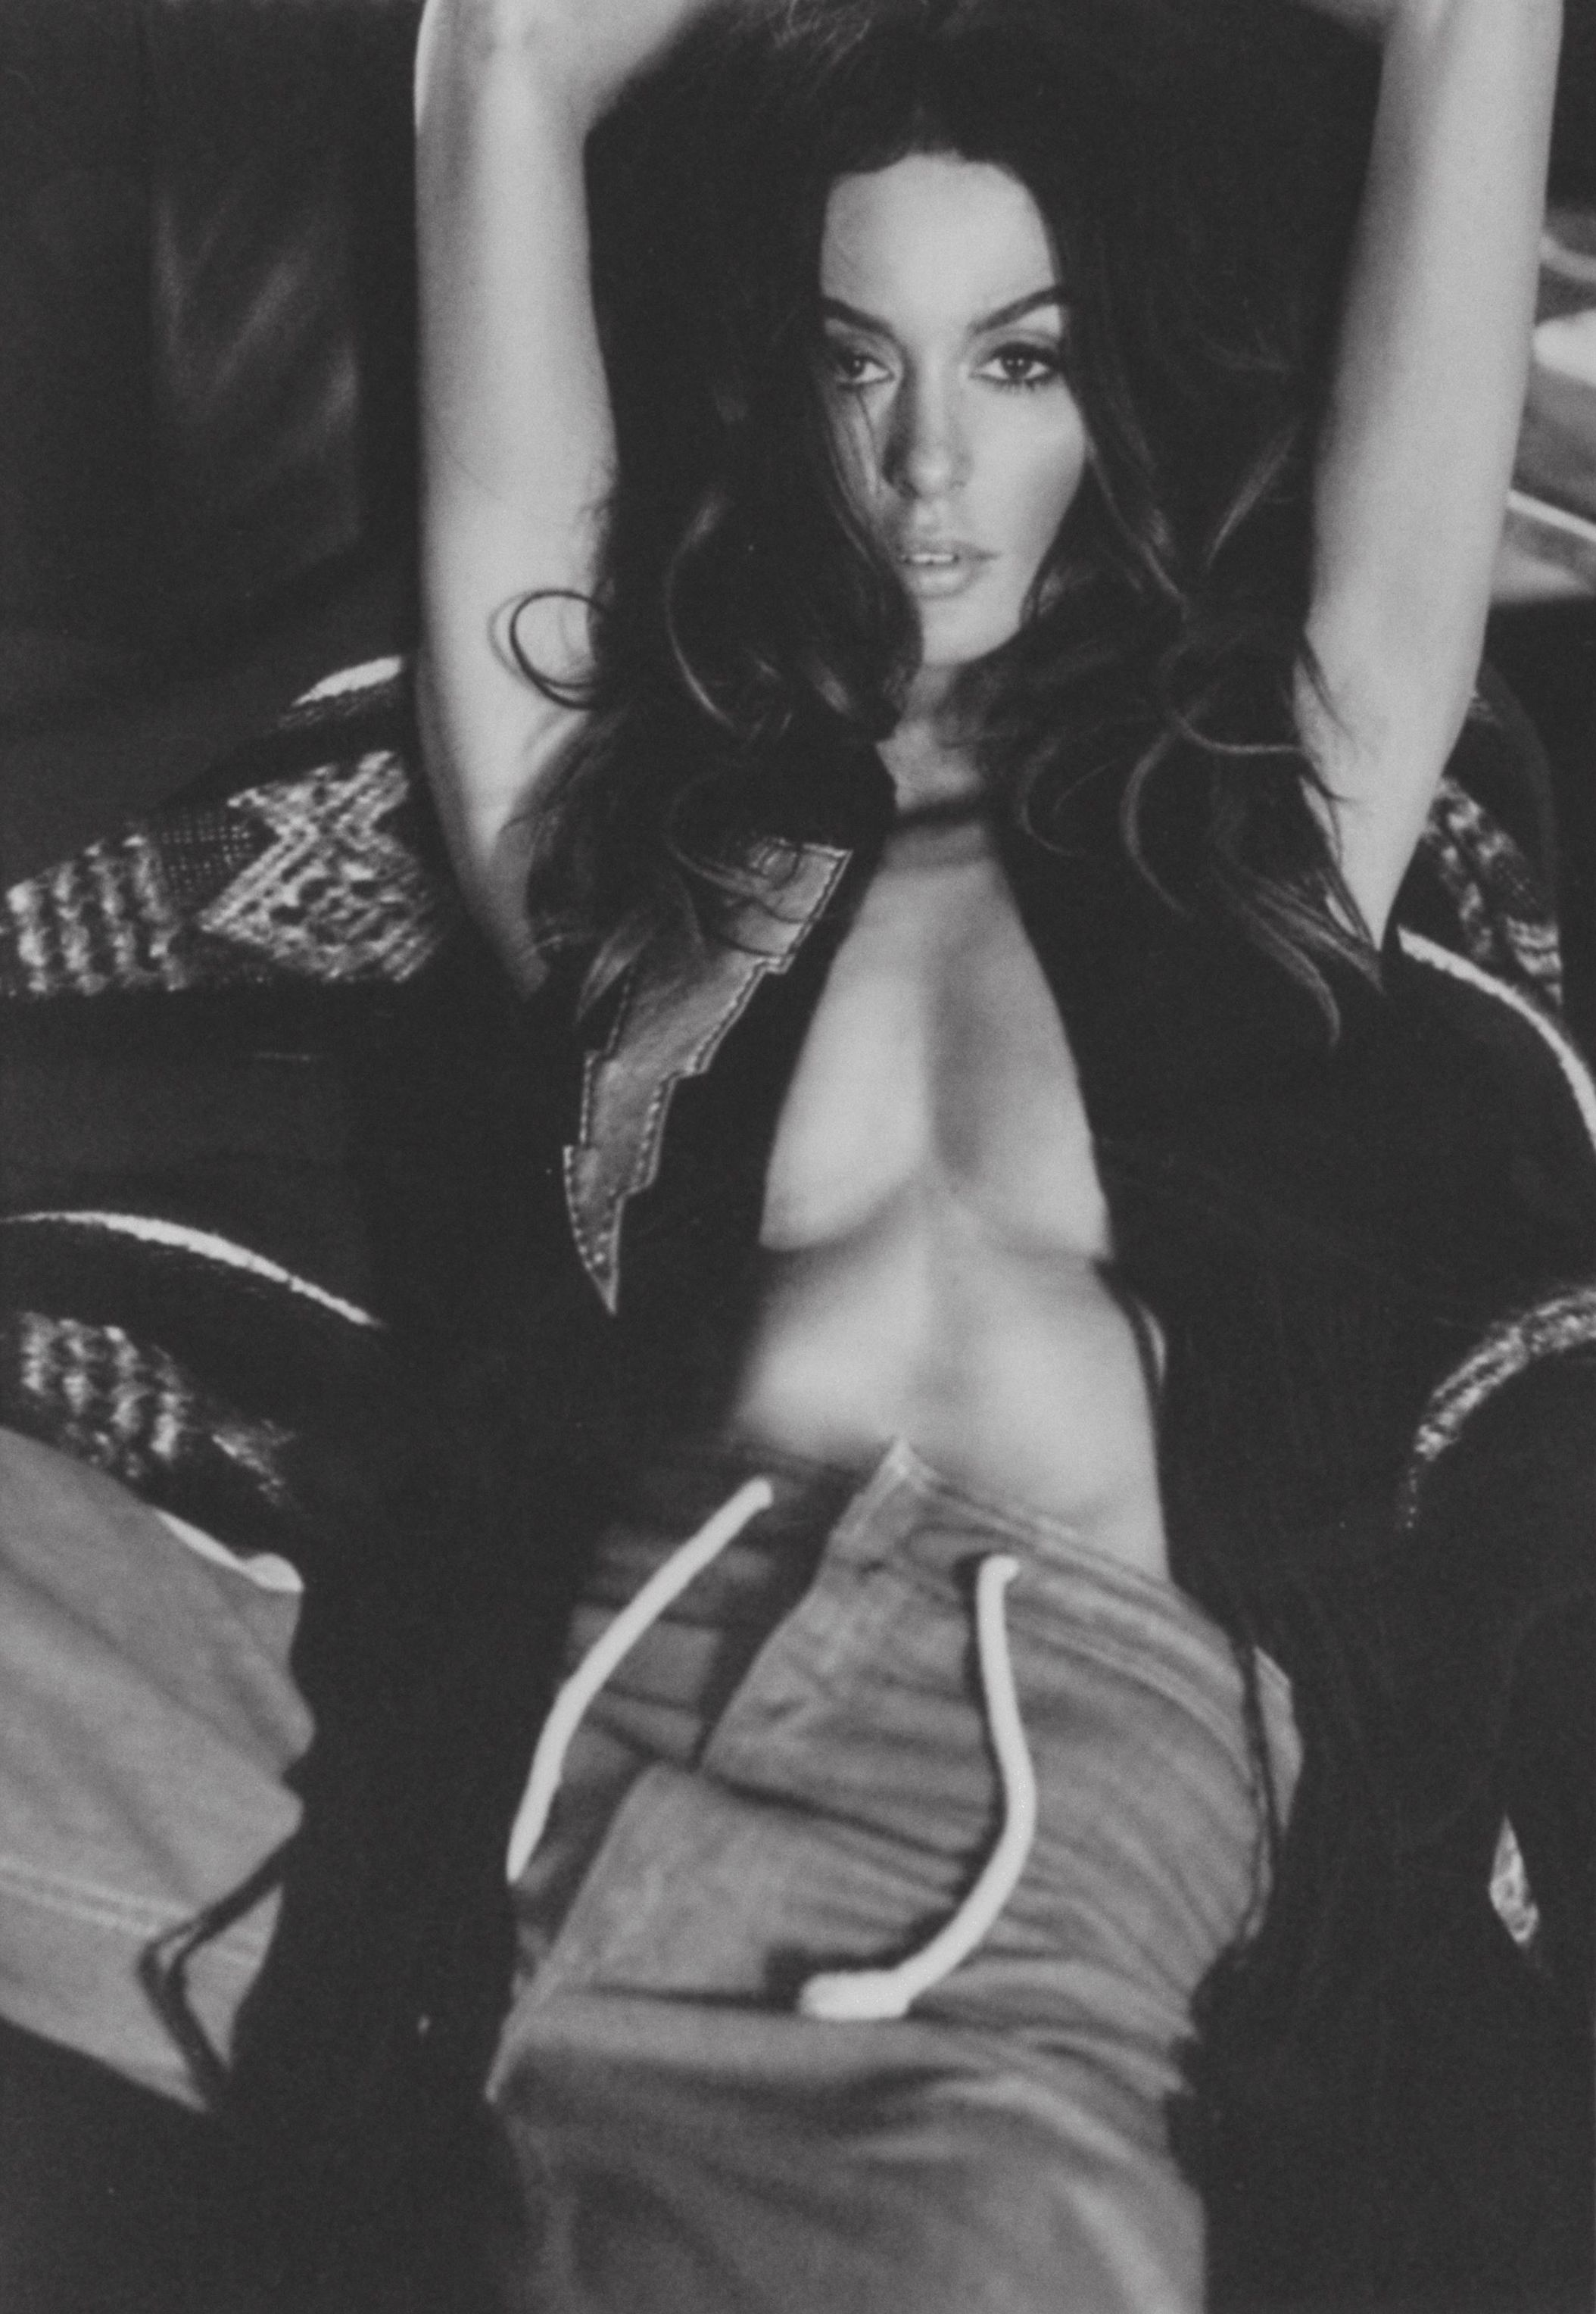 Nicole Trunfio Topless Ph...